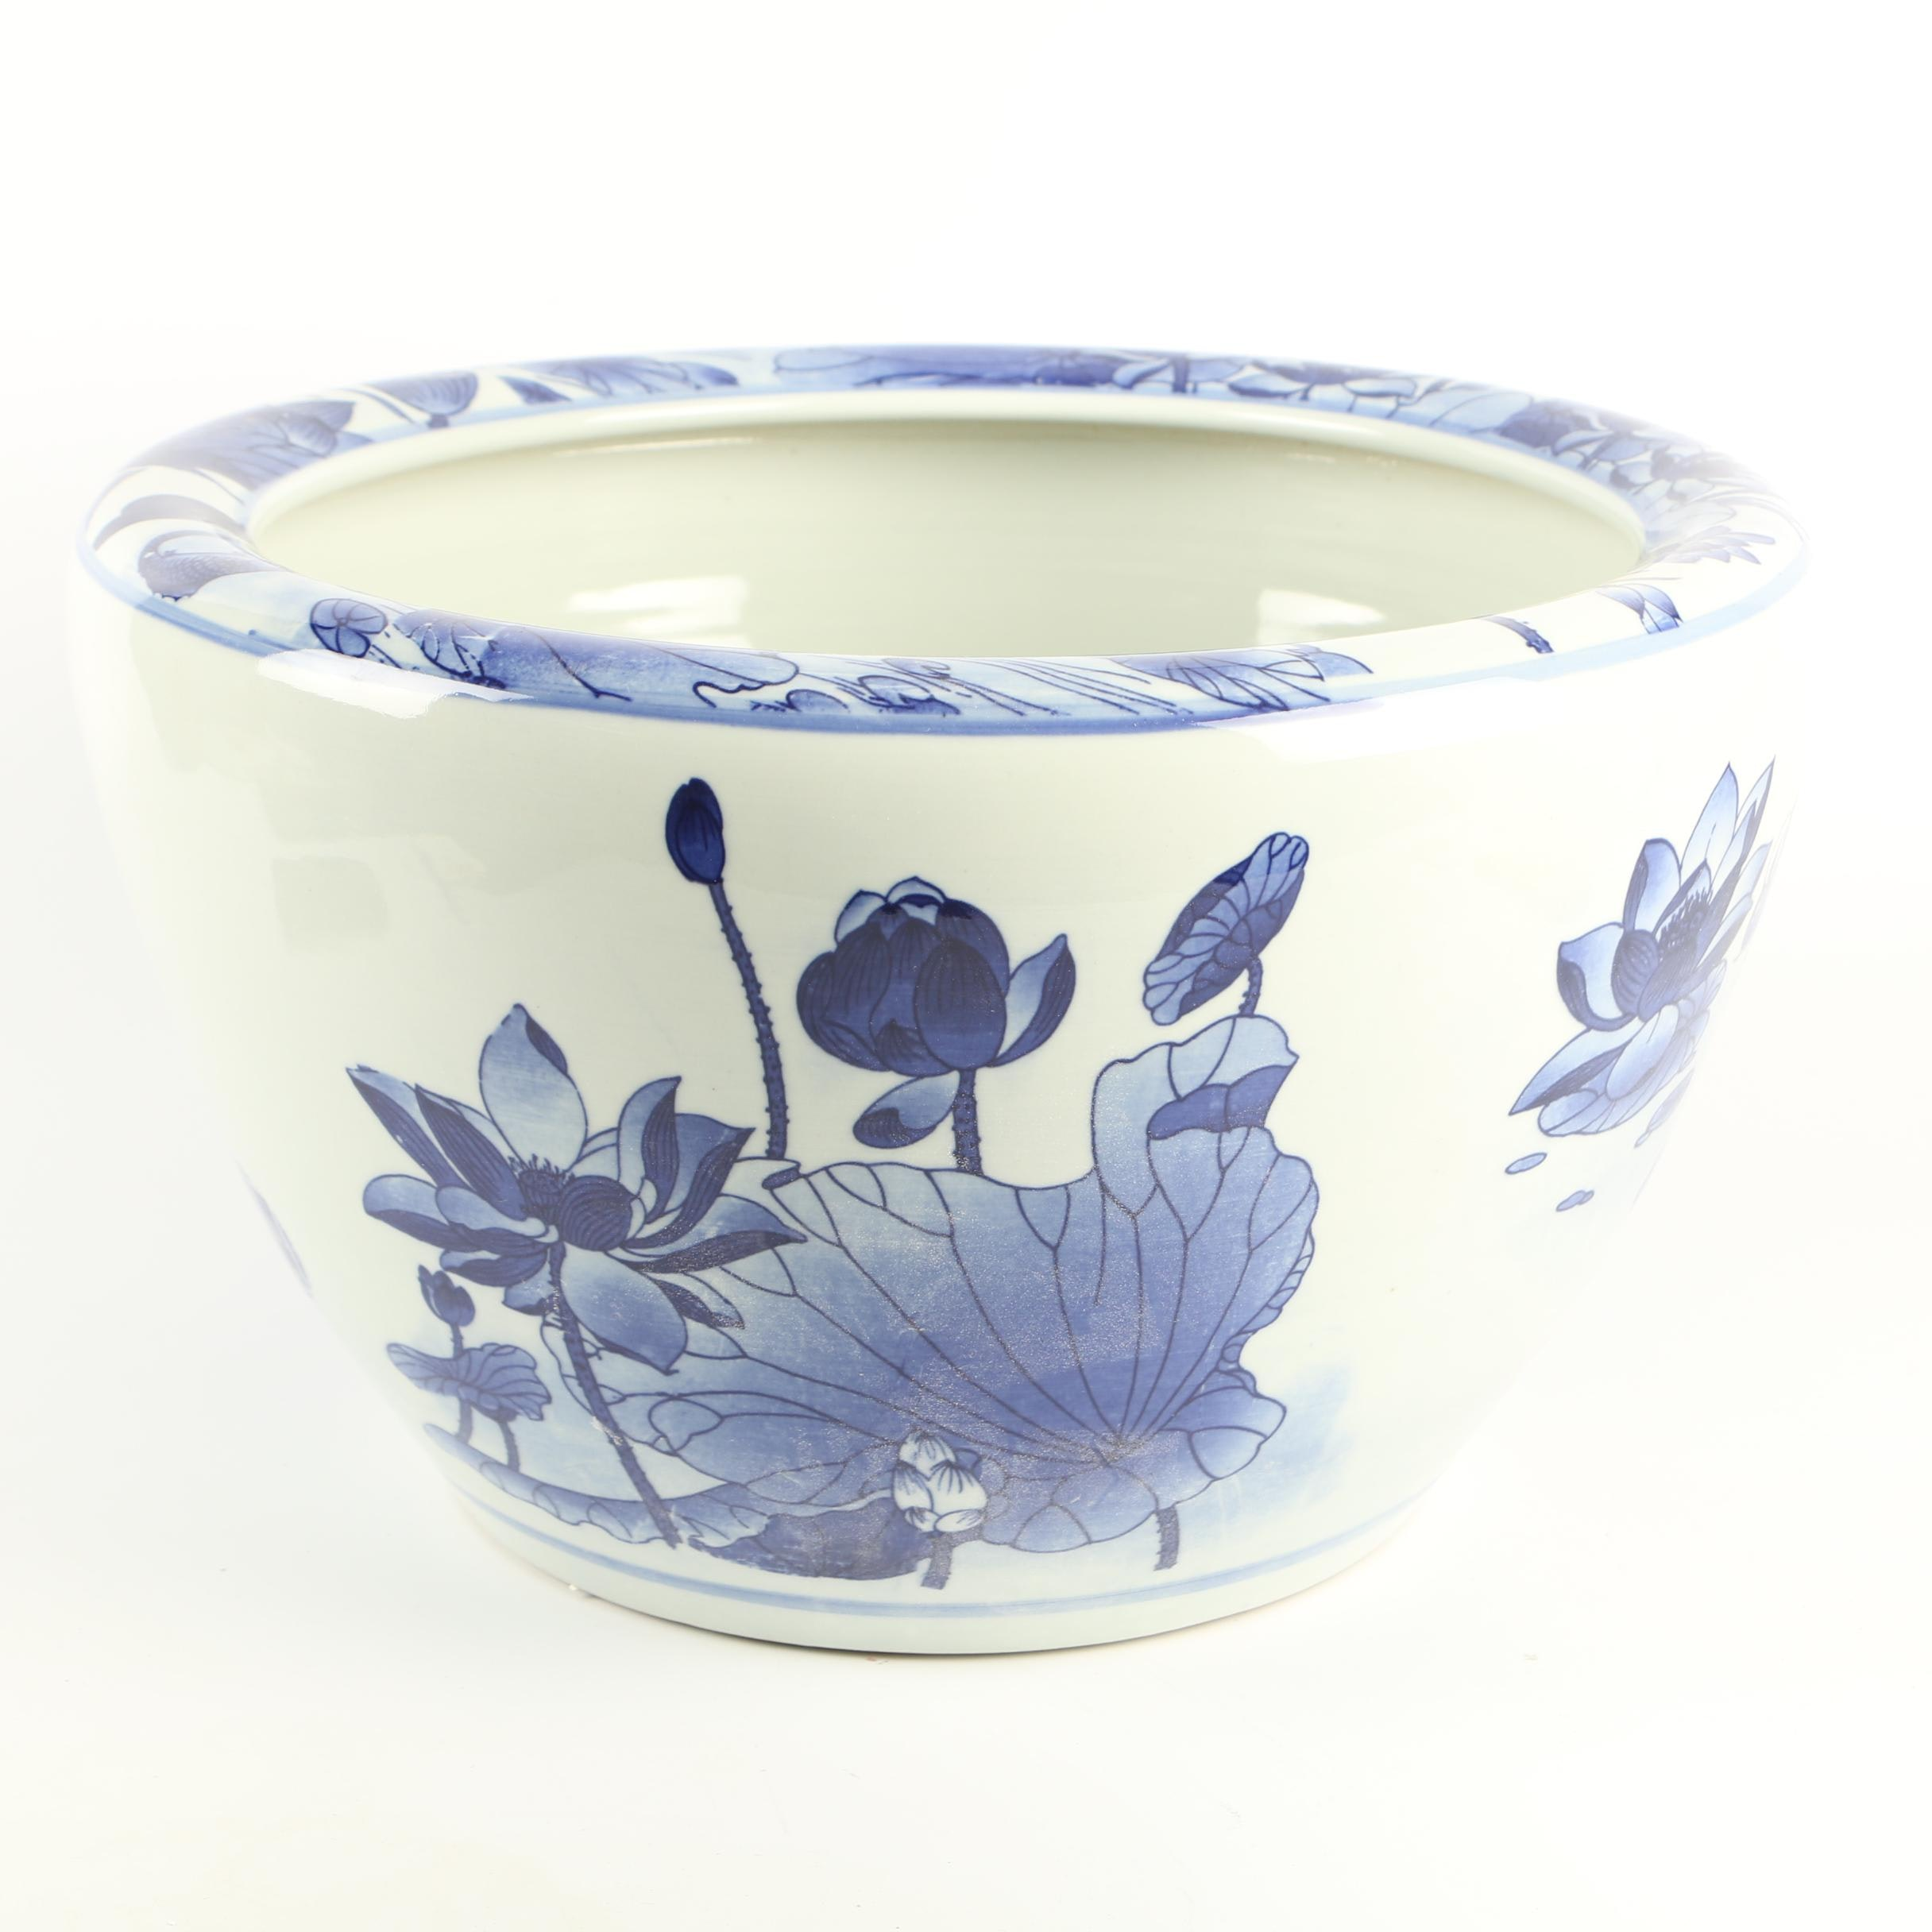 Chinese Blue and White Lotus and Water Fowl Themed Ceramic Planter